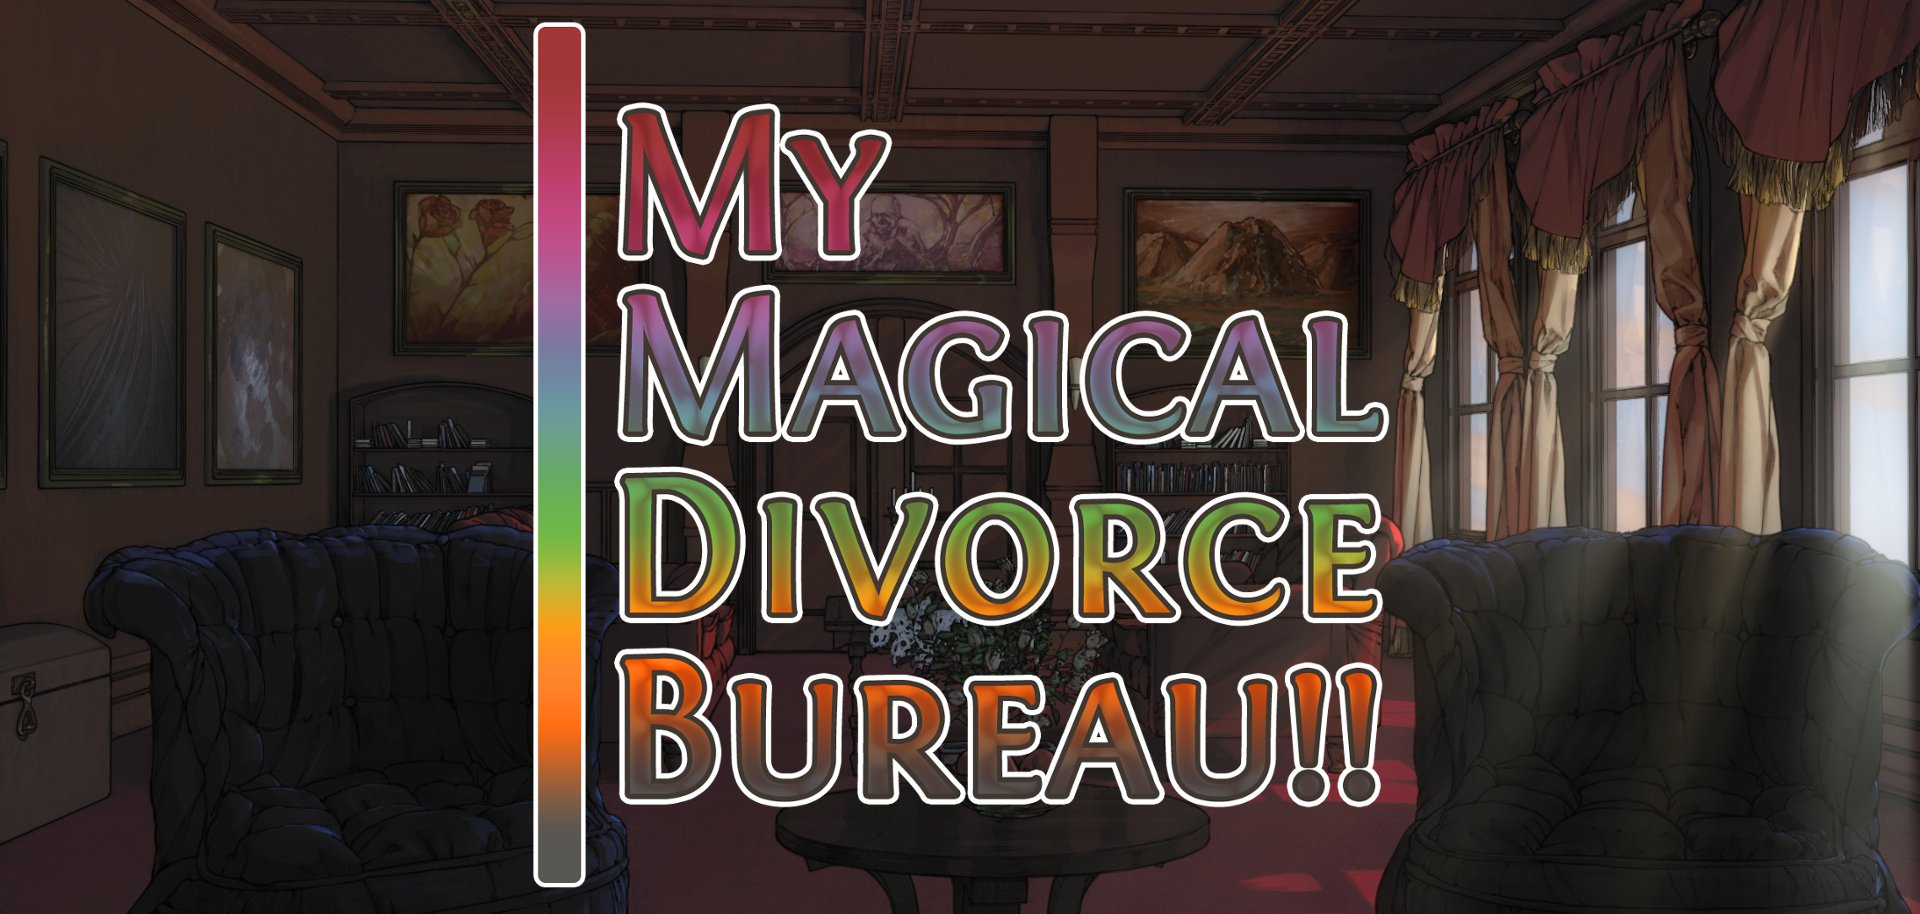 My Magical Divorce Bureau!!